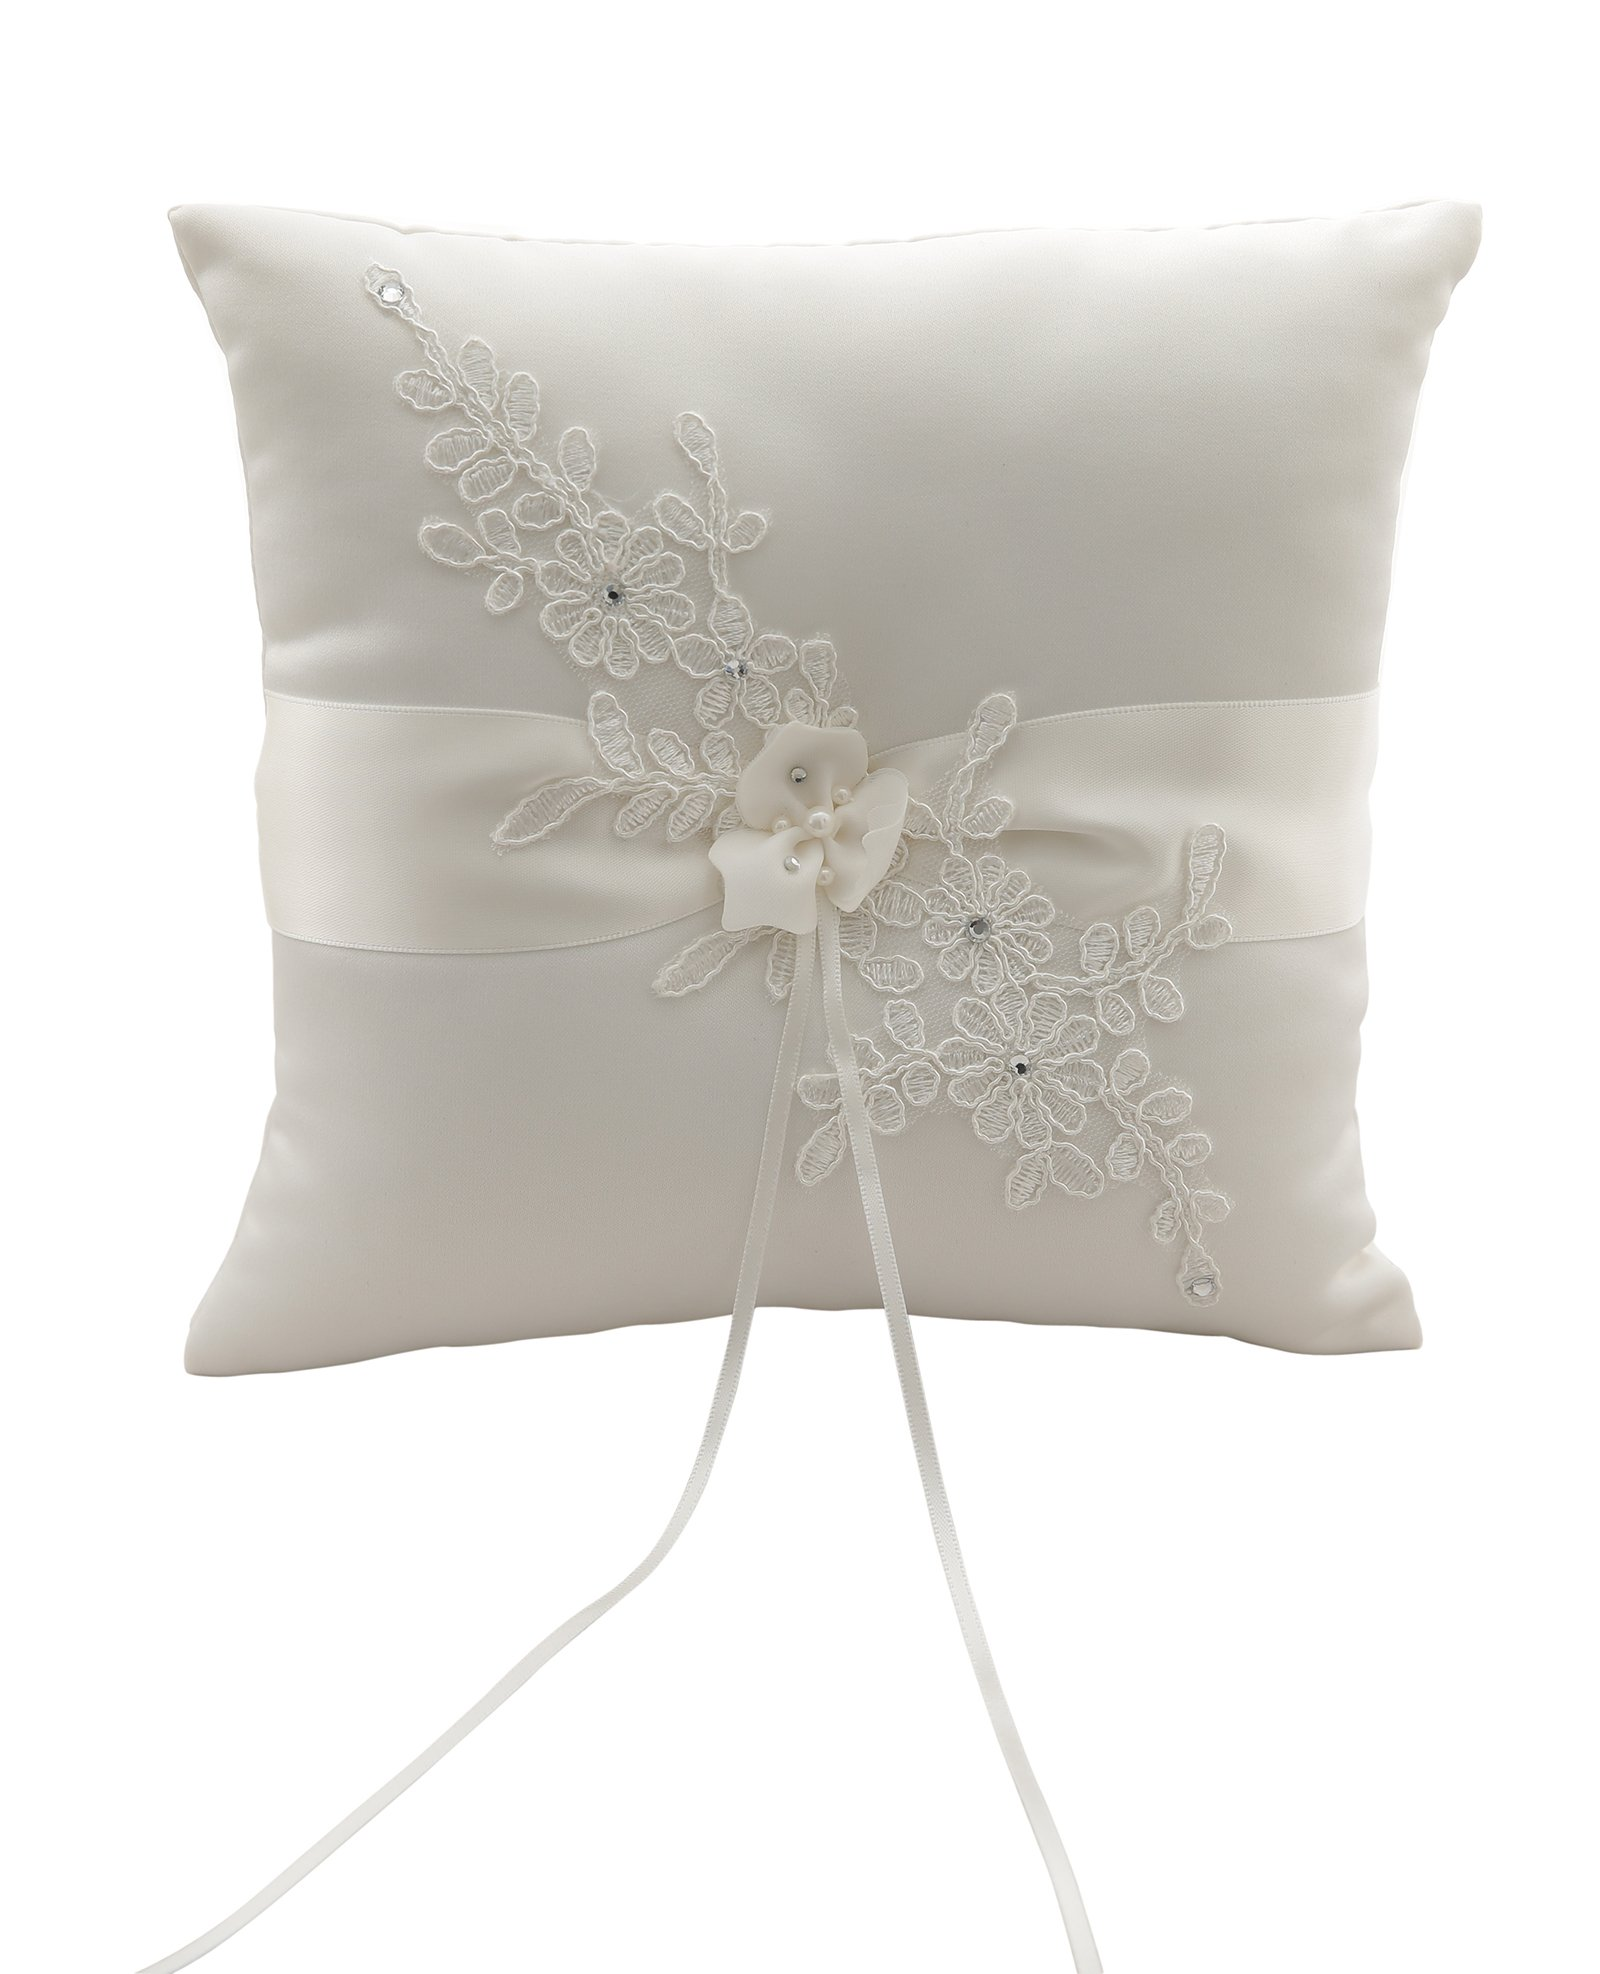 MeryaDress Ivory Satin and Lace Wedding Ring Bearer Pillow Cushion Embroider Flower Lace with Bow, 8 Inch (21cmx 21cm) Ring Bearer for Beach Wedding, Wedding ceremony-G